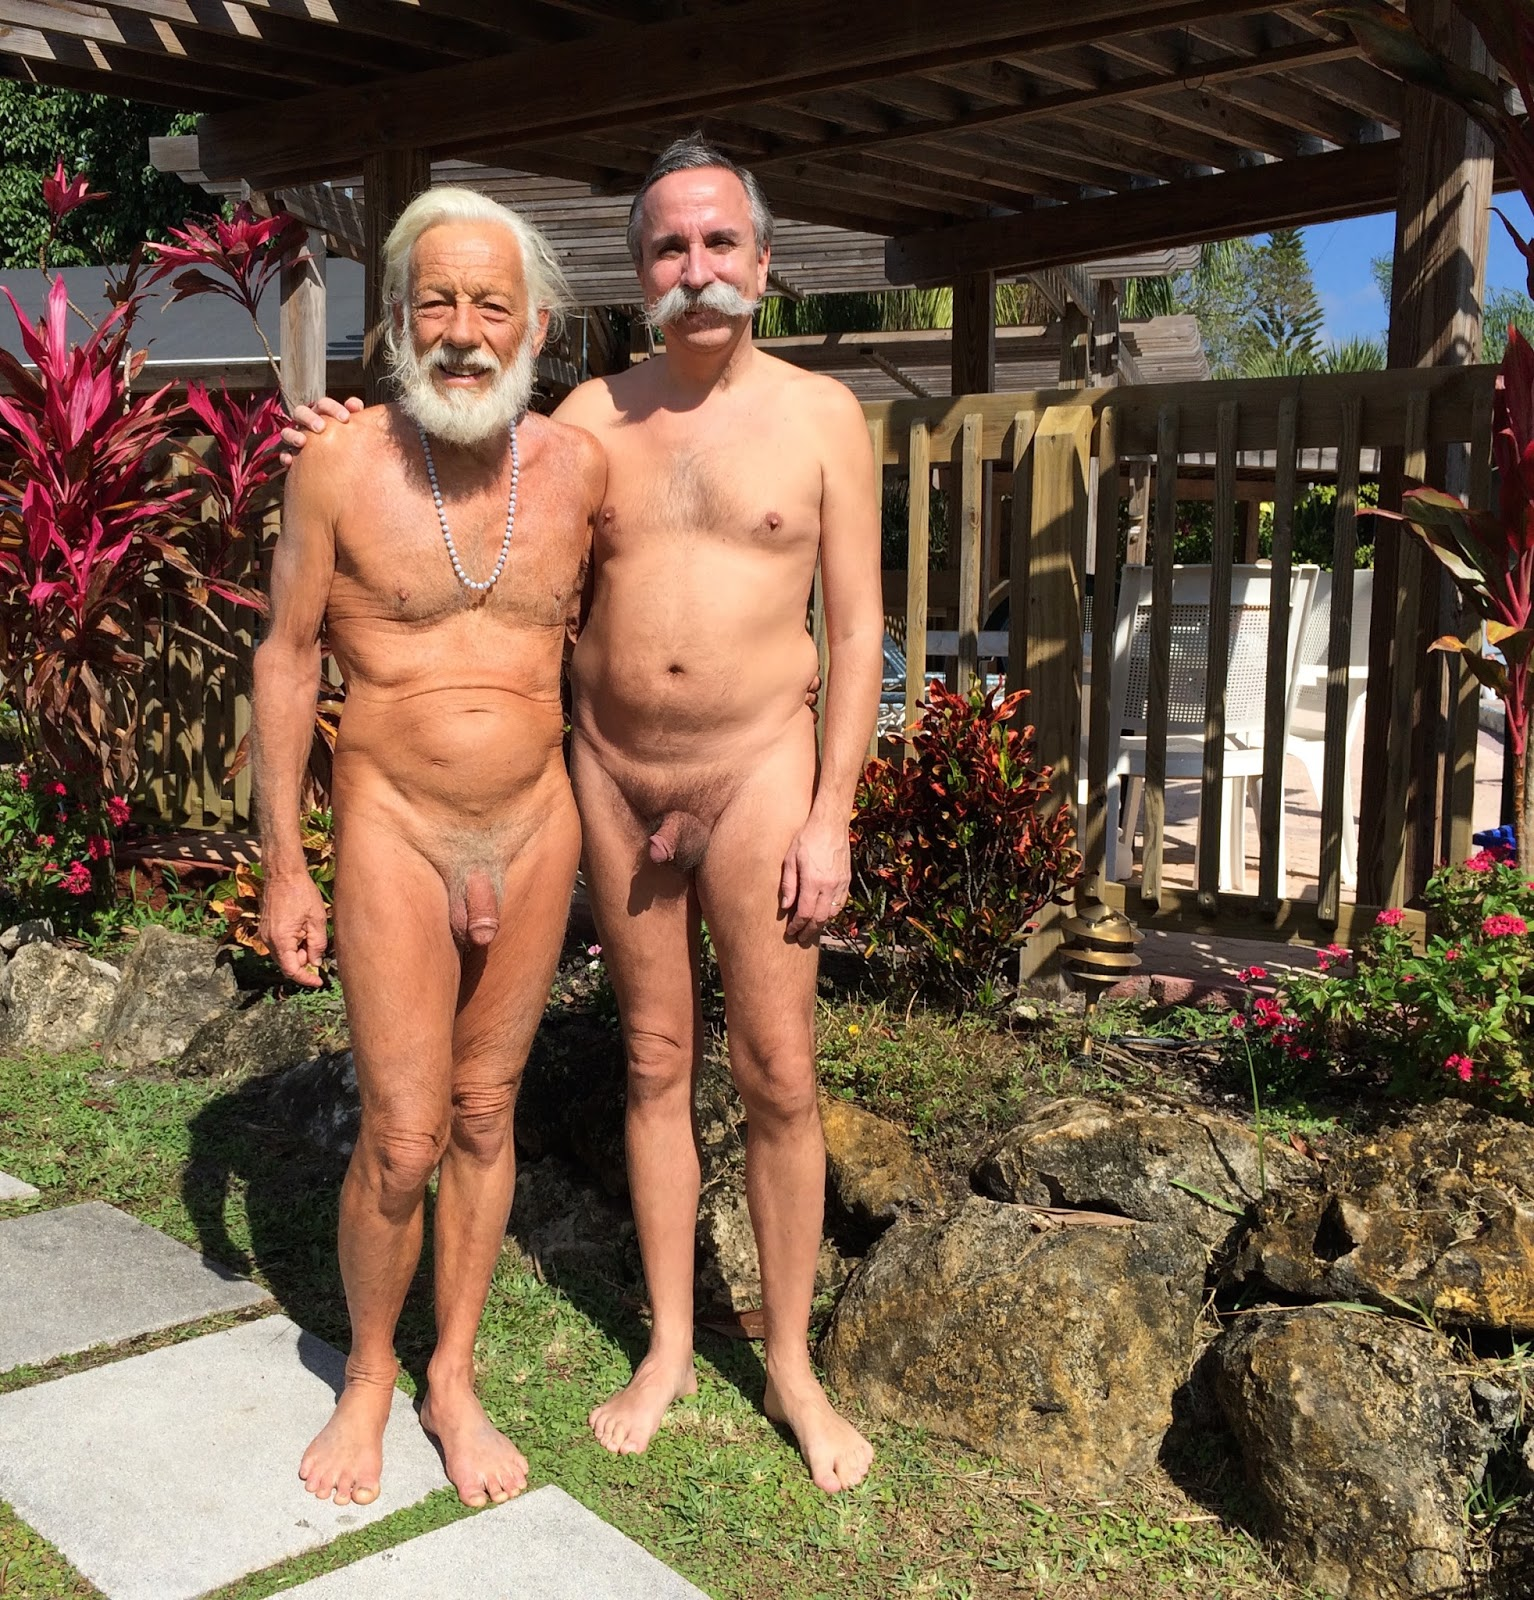 Naturist Pictures Nudist Community Photos